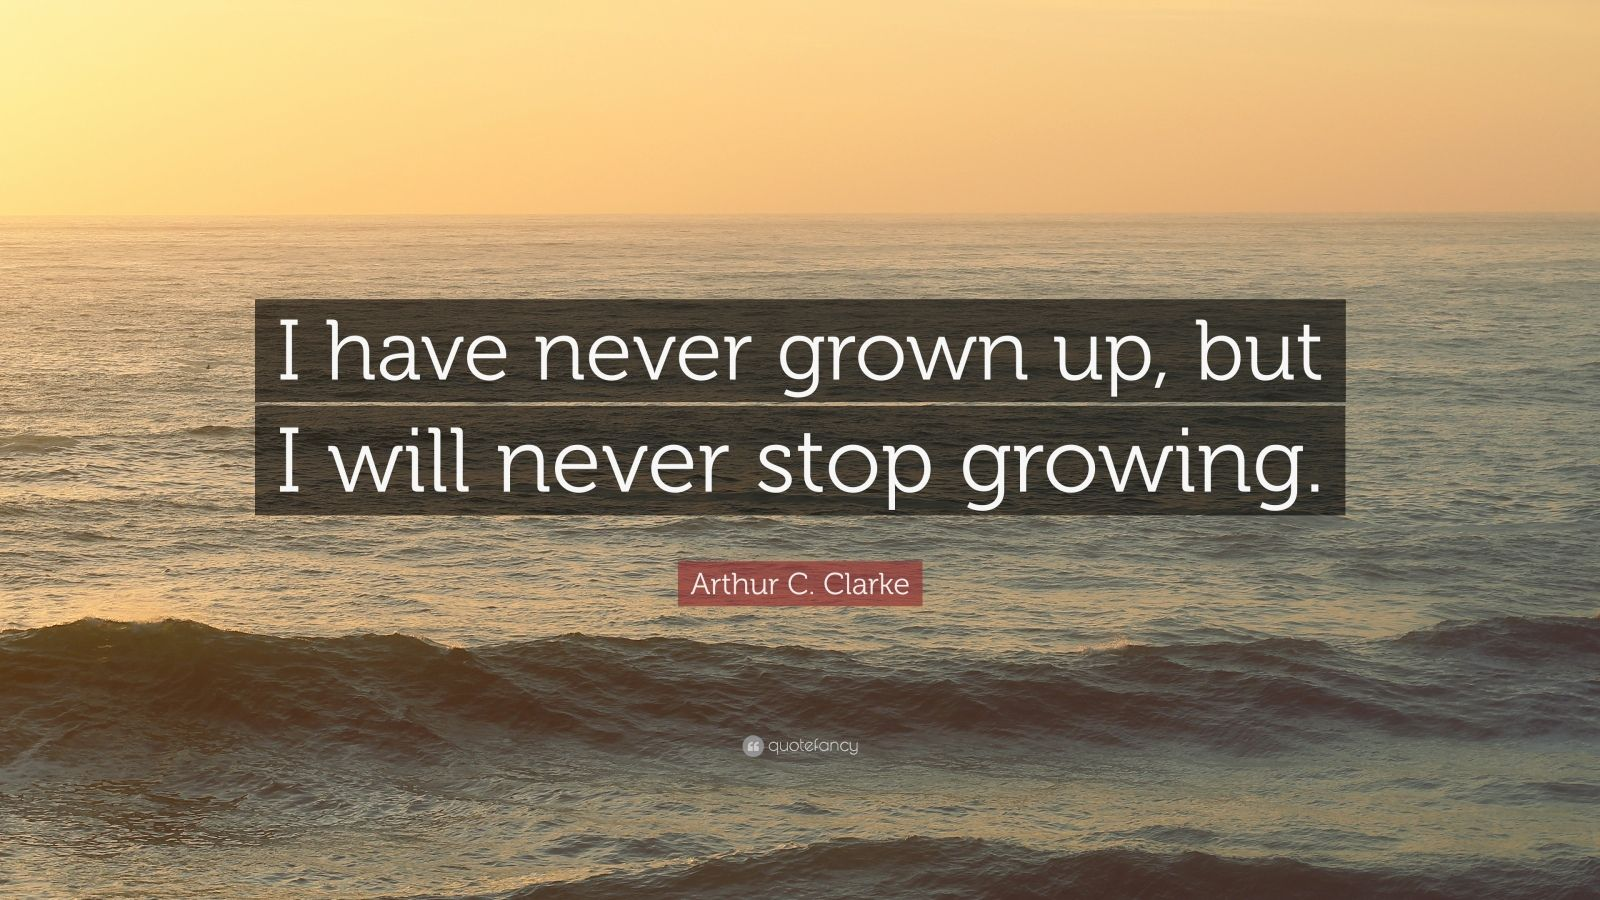 """Arthur C. Clarke Quote: """"I have never grown up, but I will never stop growing."""""""